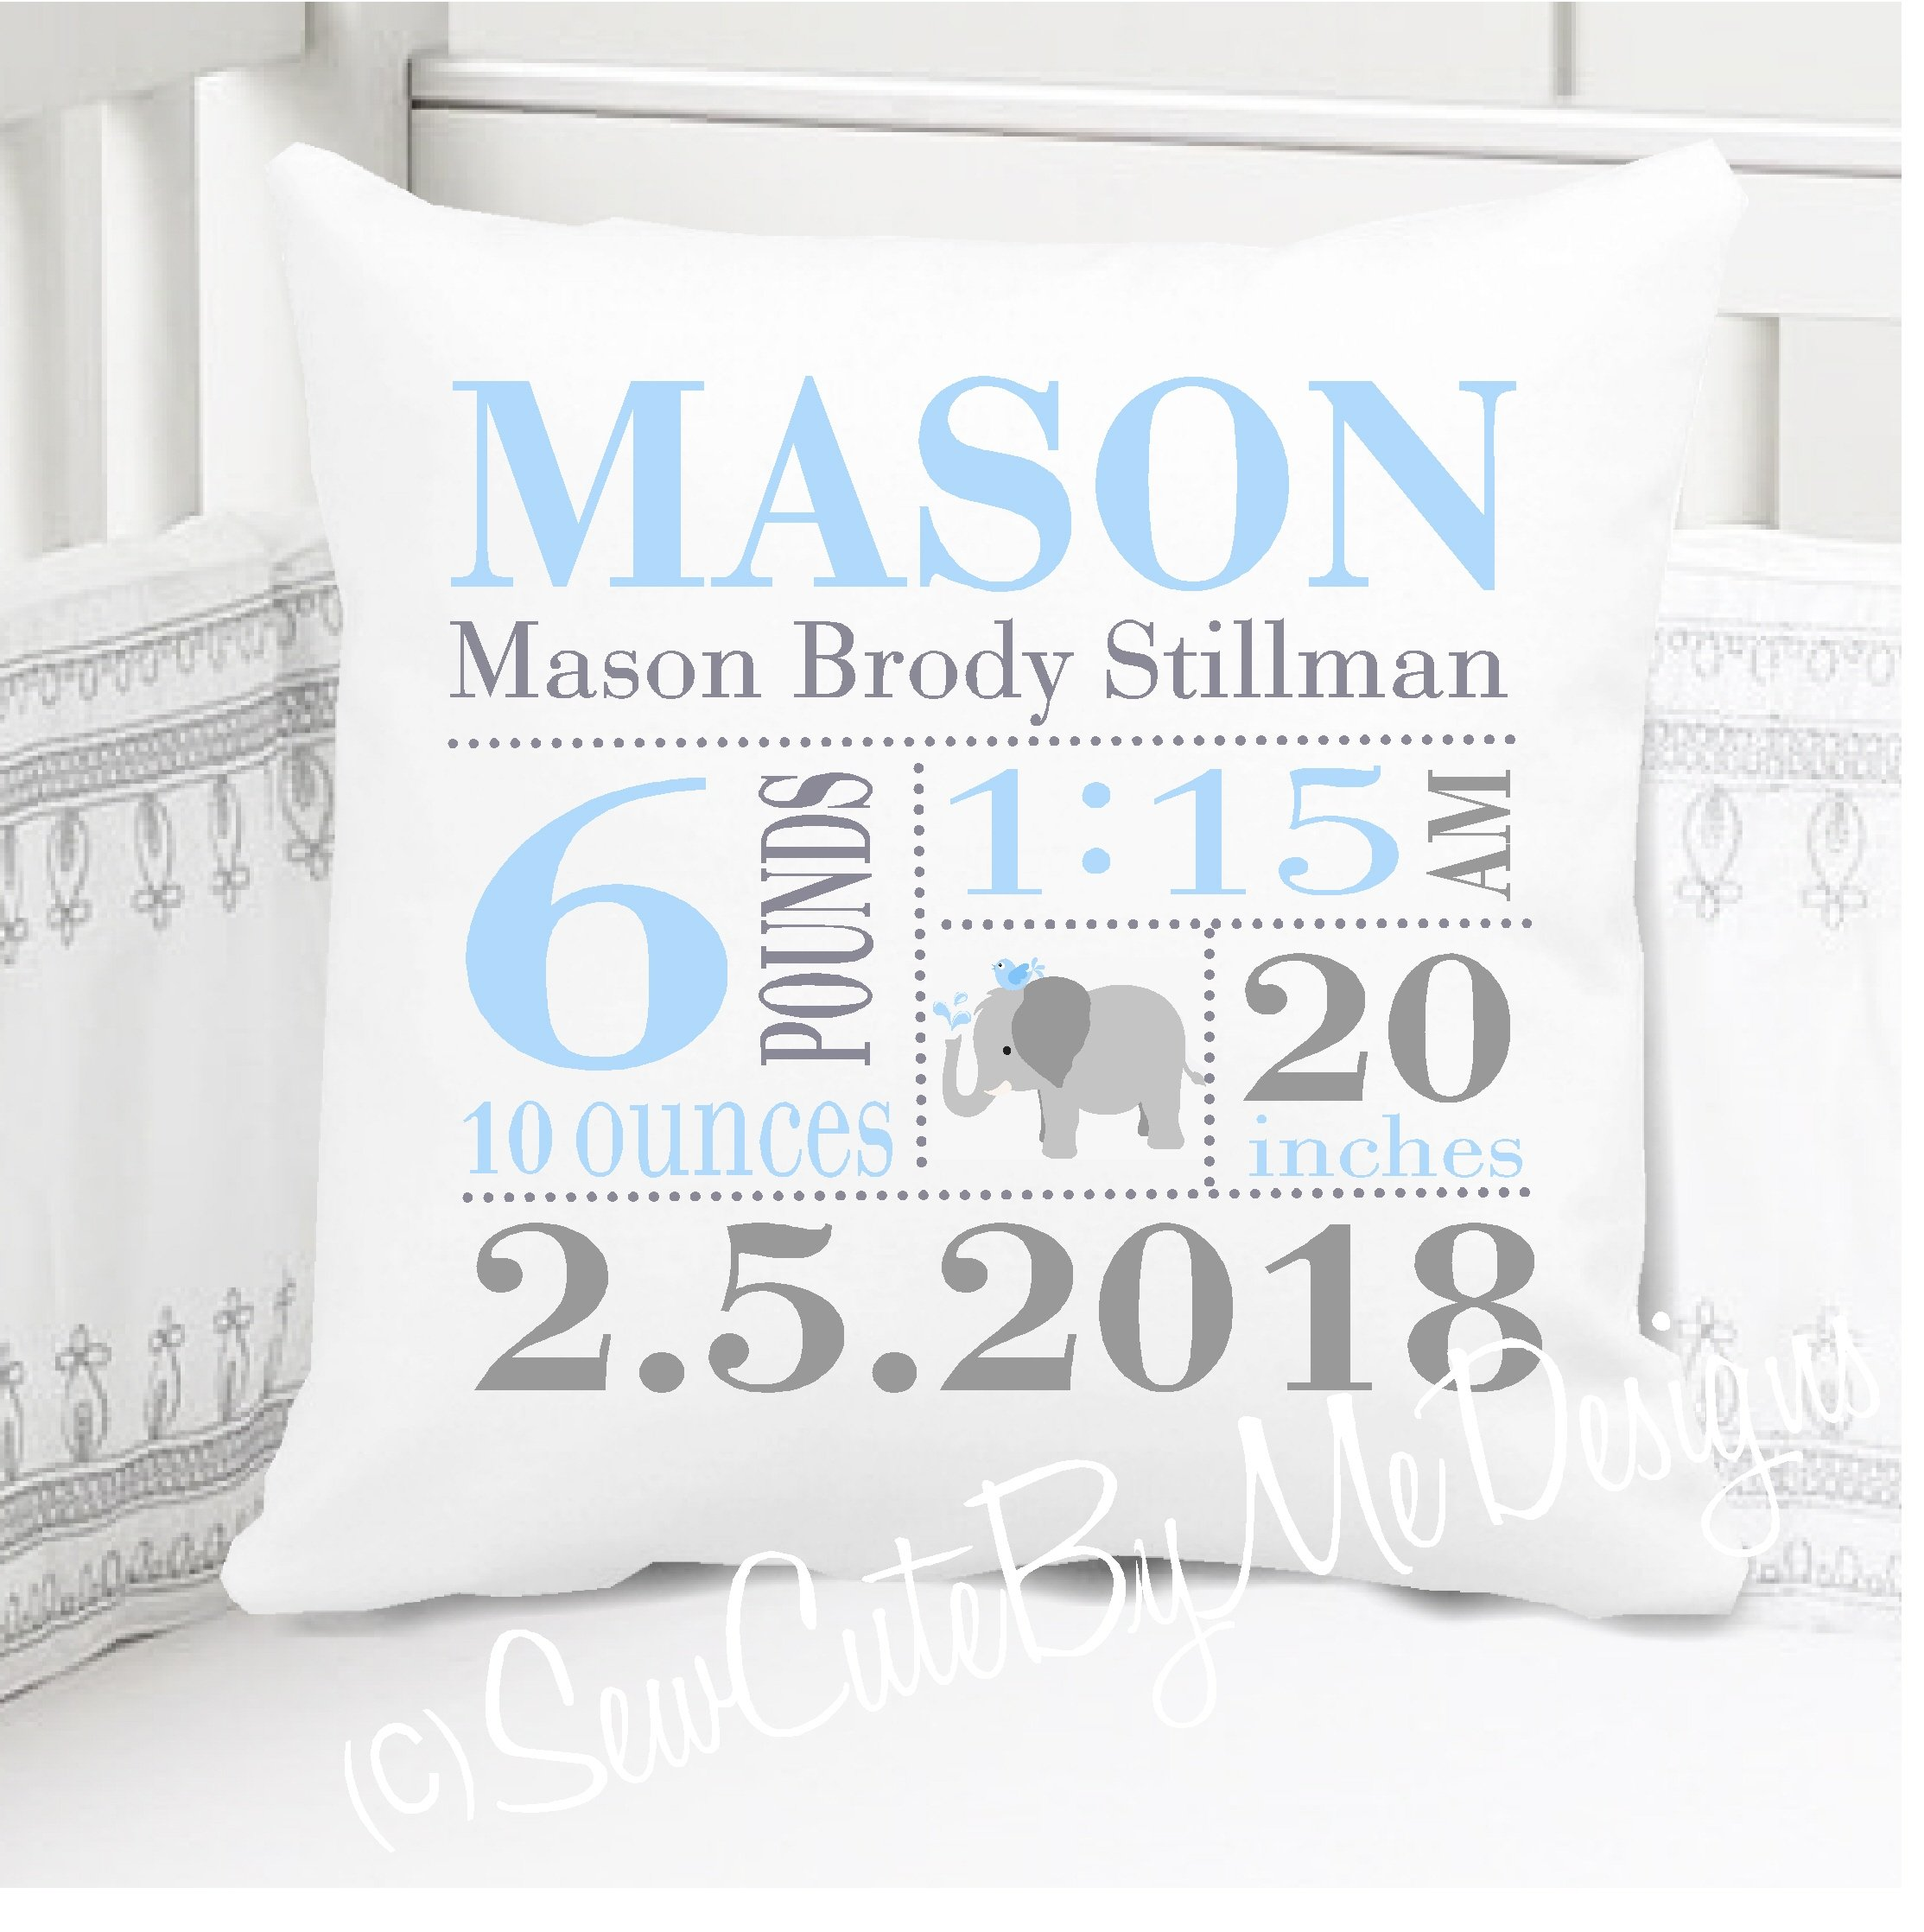 Sew Cute by Me Designs Original Birth Announcement Pillow for Baby Boys Elephant Nursery - Includes Personalized Pillowcase and Pillow Insert 14x14 or 16x16